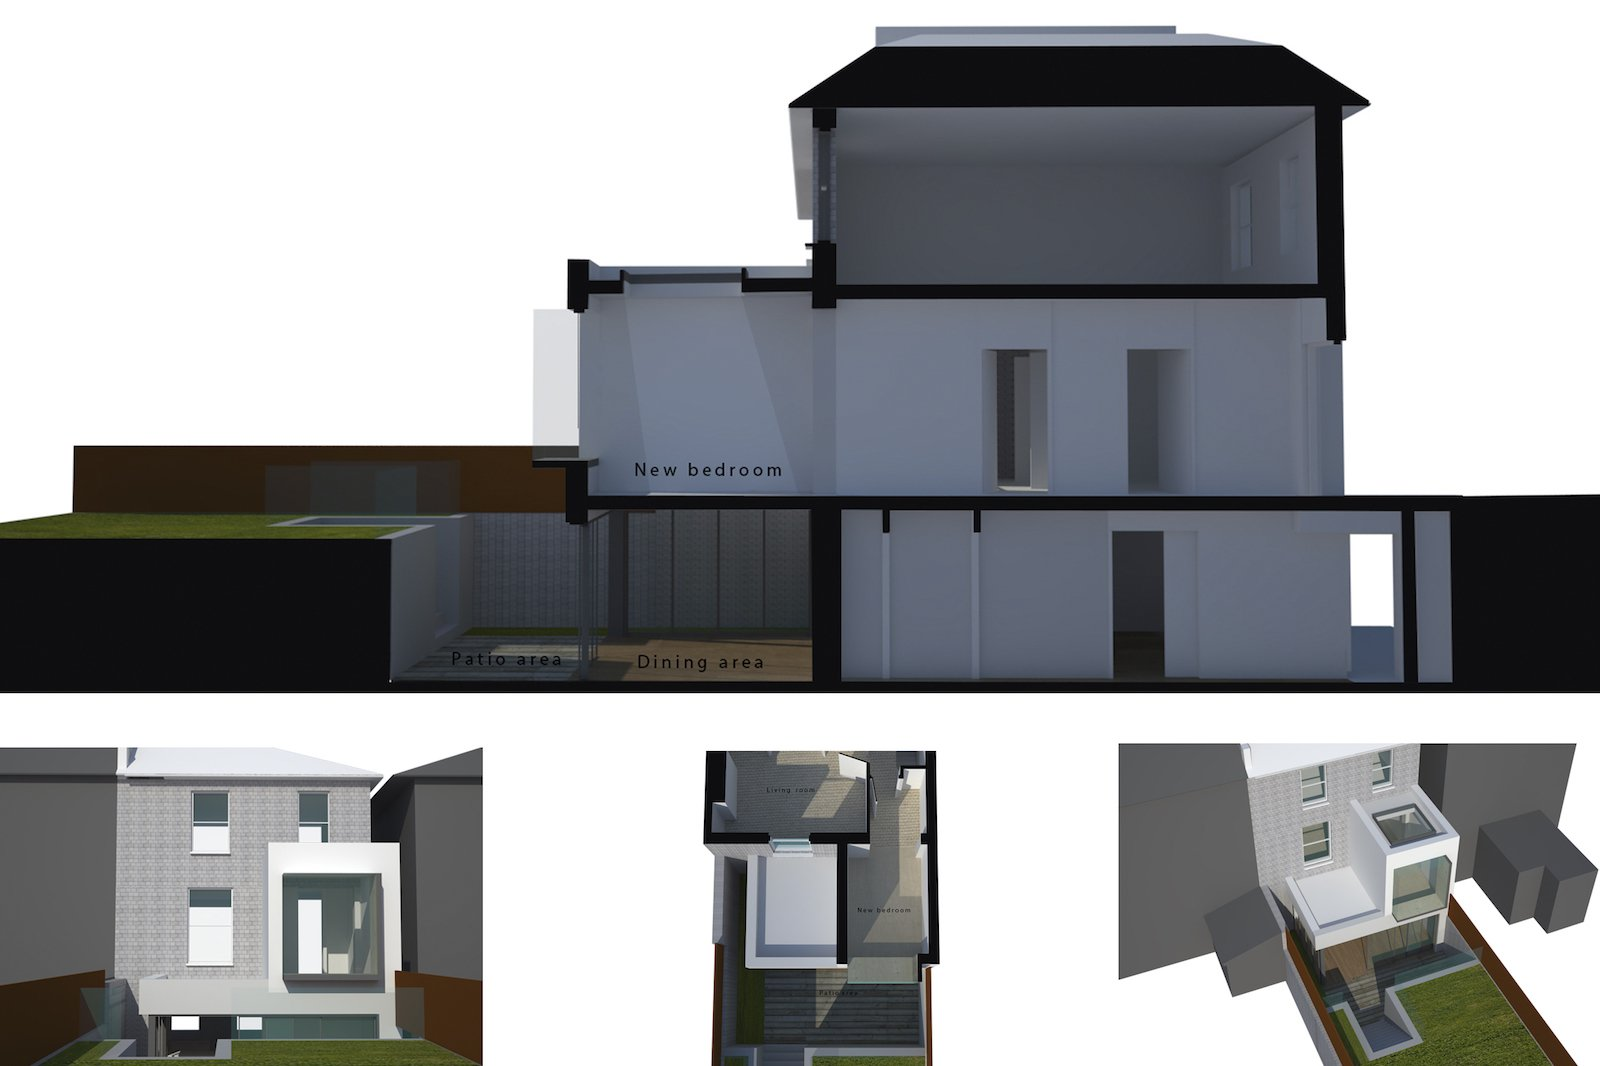 Architect designed two storey house extension Brockley Lewisham SE4 – 3D window seat option Brockley, Lewisham SE4 | Two storey house extension